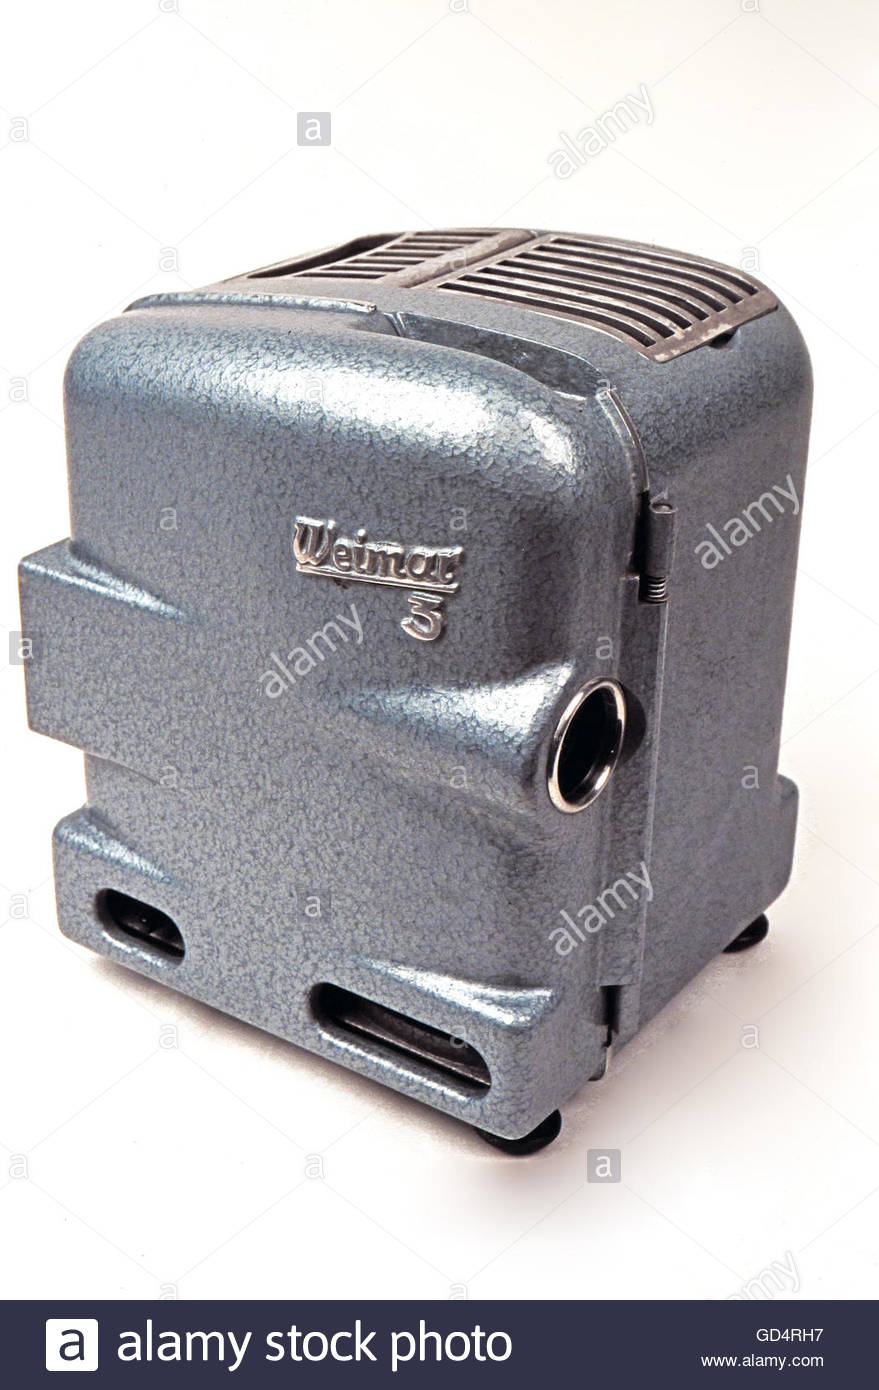 movie, narrow-gauge cine projector 'Weimar 3', made by: VEB Feingeraetewerk Weimar, East-Germany, 1957, - Stock Image